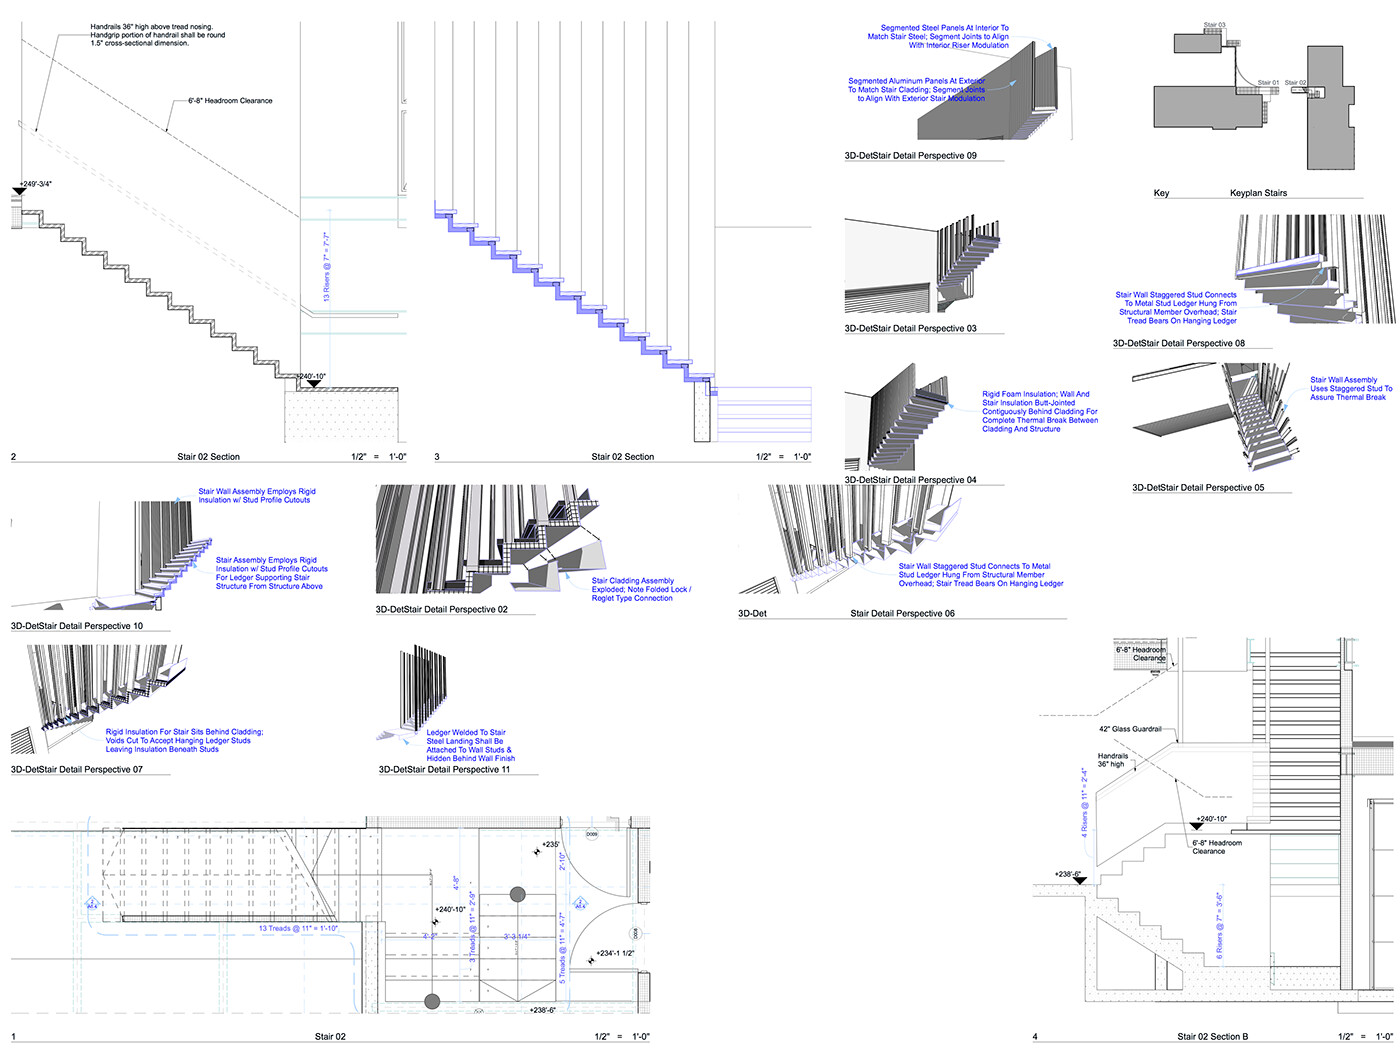 Here we see perspectives, perspective sections, 2D sections and plans all in one sheet: this should decrease any chances of error or misunderstanding.